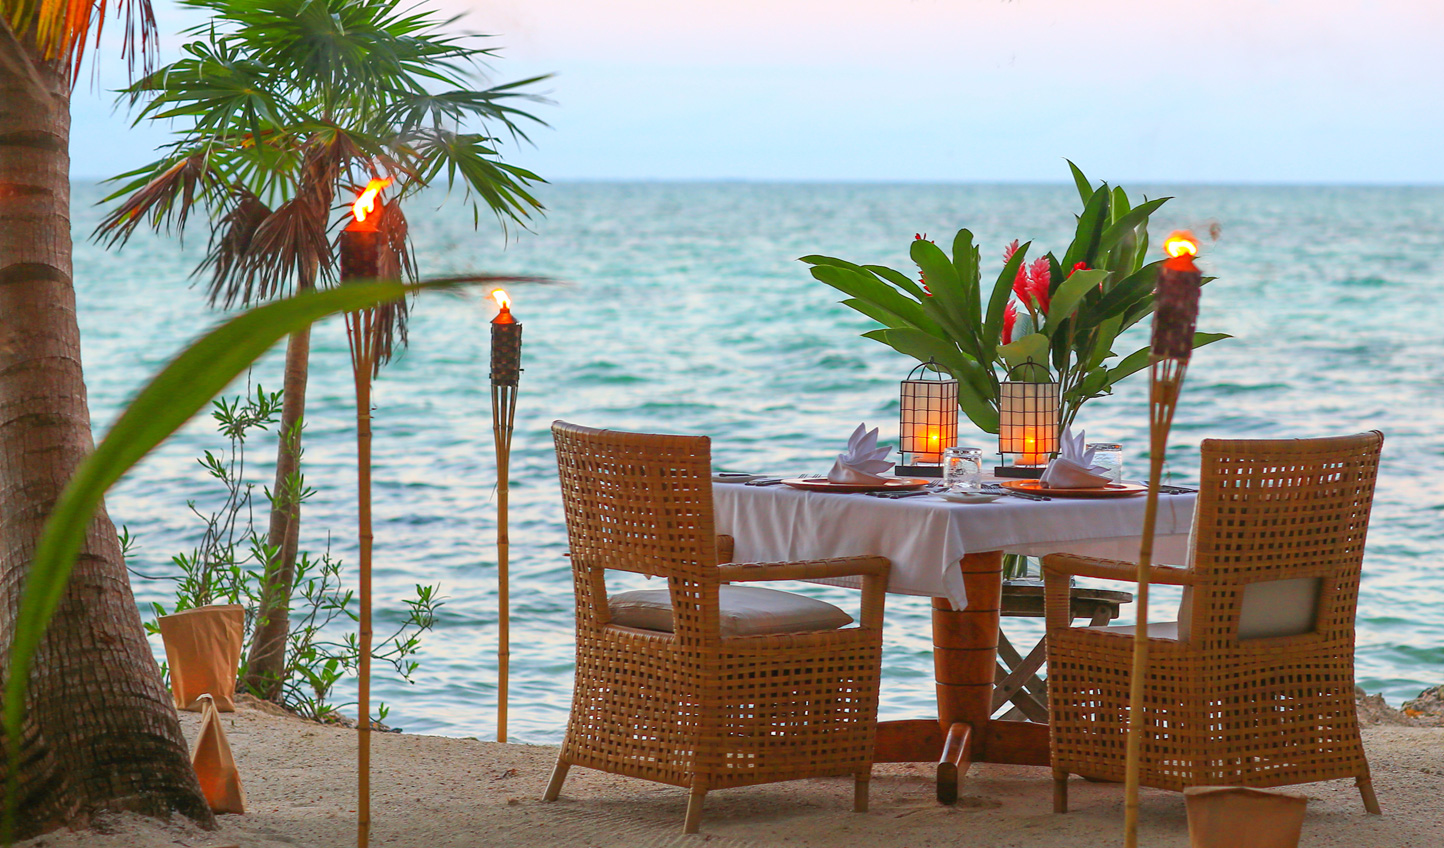 Find a secluded spot on the island for a romantic dinner for two